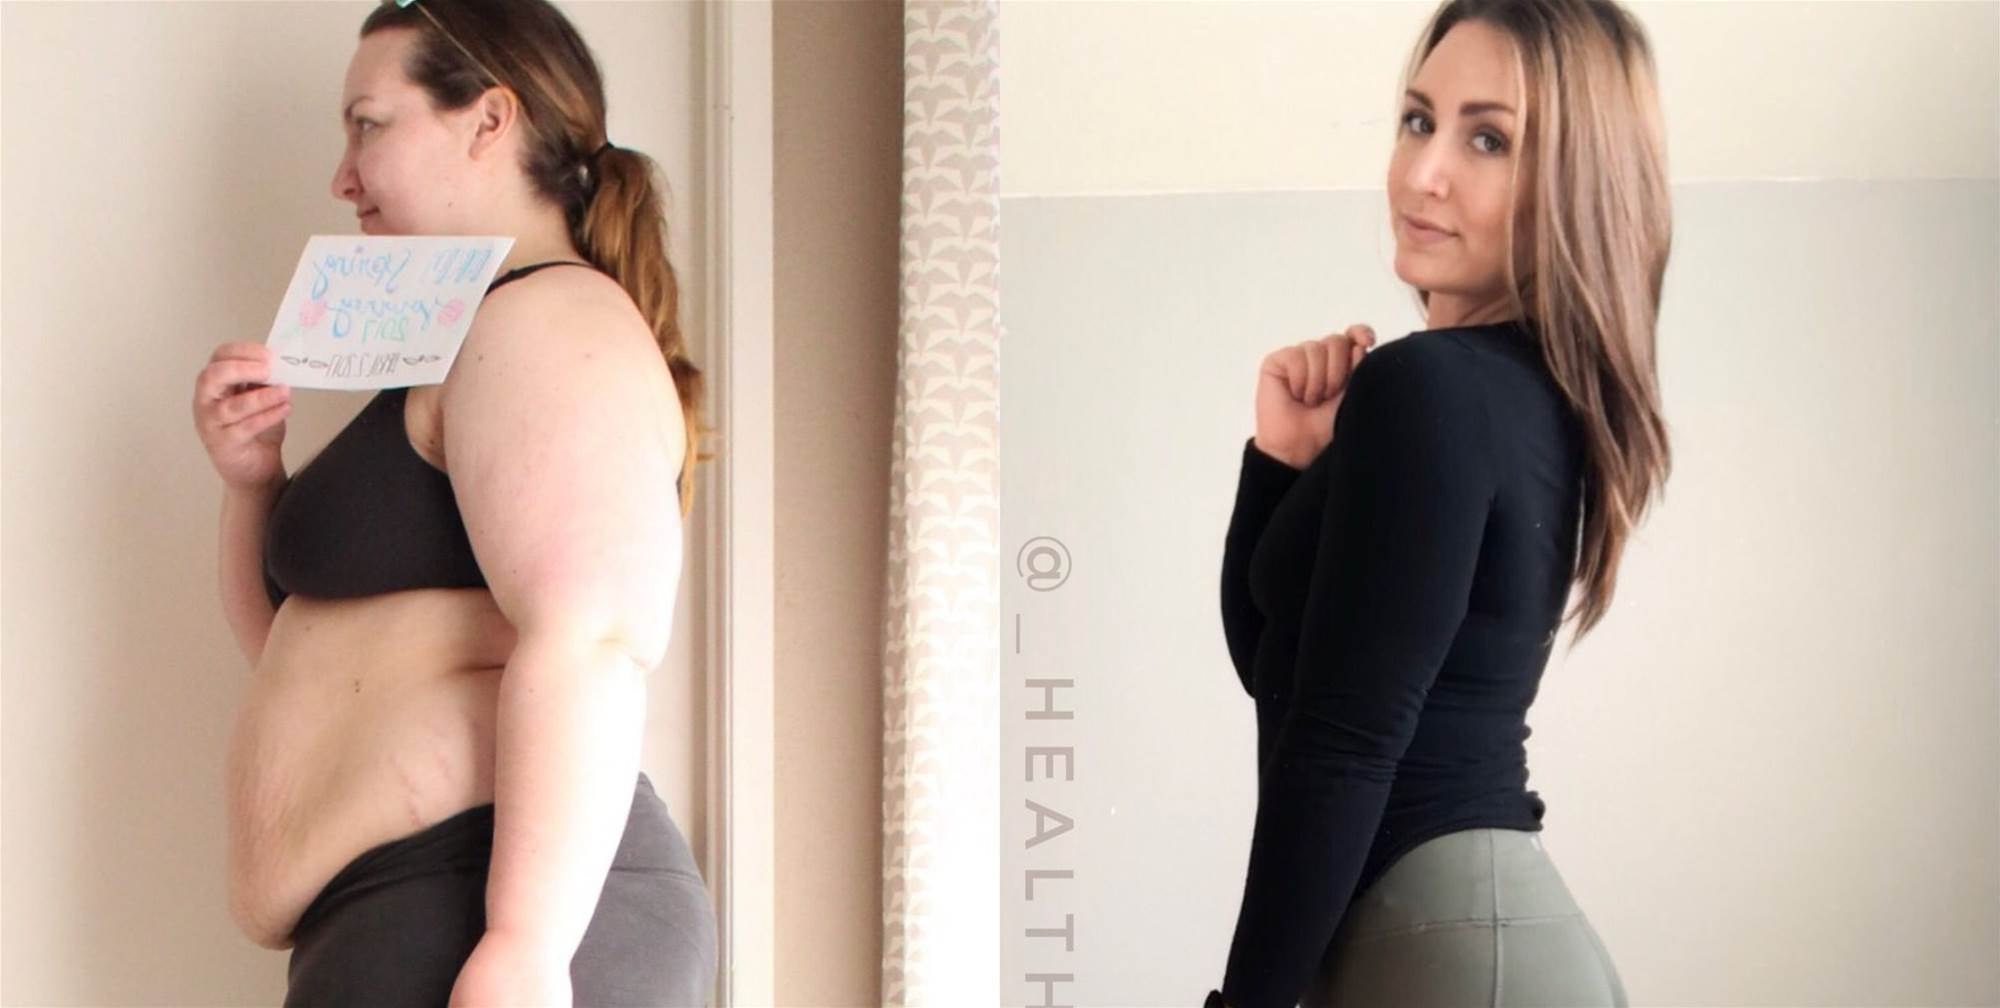 Caring for Her Critically Ill Daughter Inspired This Woman to Lose 40kg